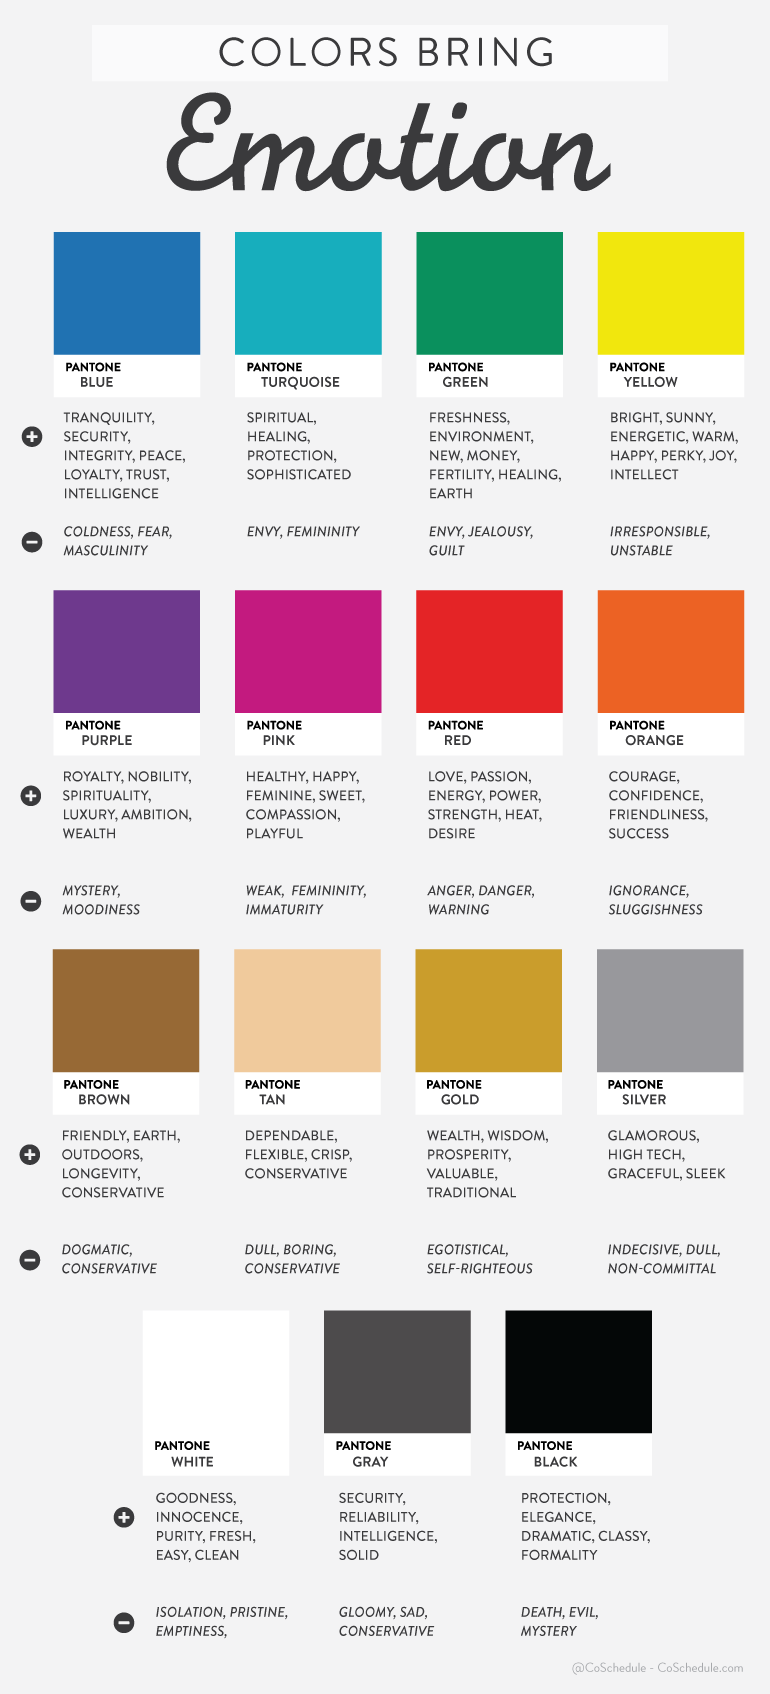 Color Emotion Meanings Theory Guide For Blog Branding And Marketing